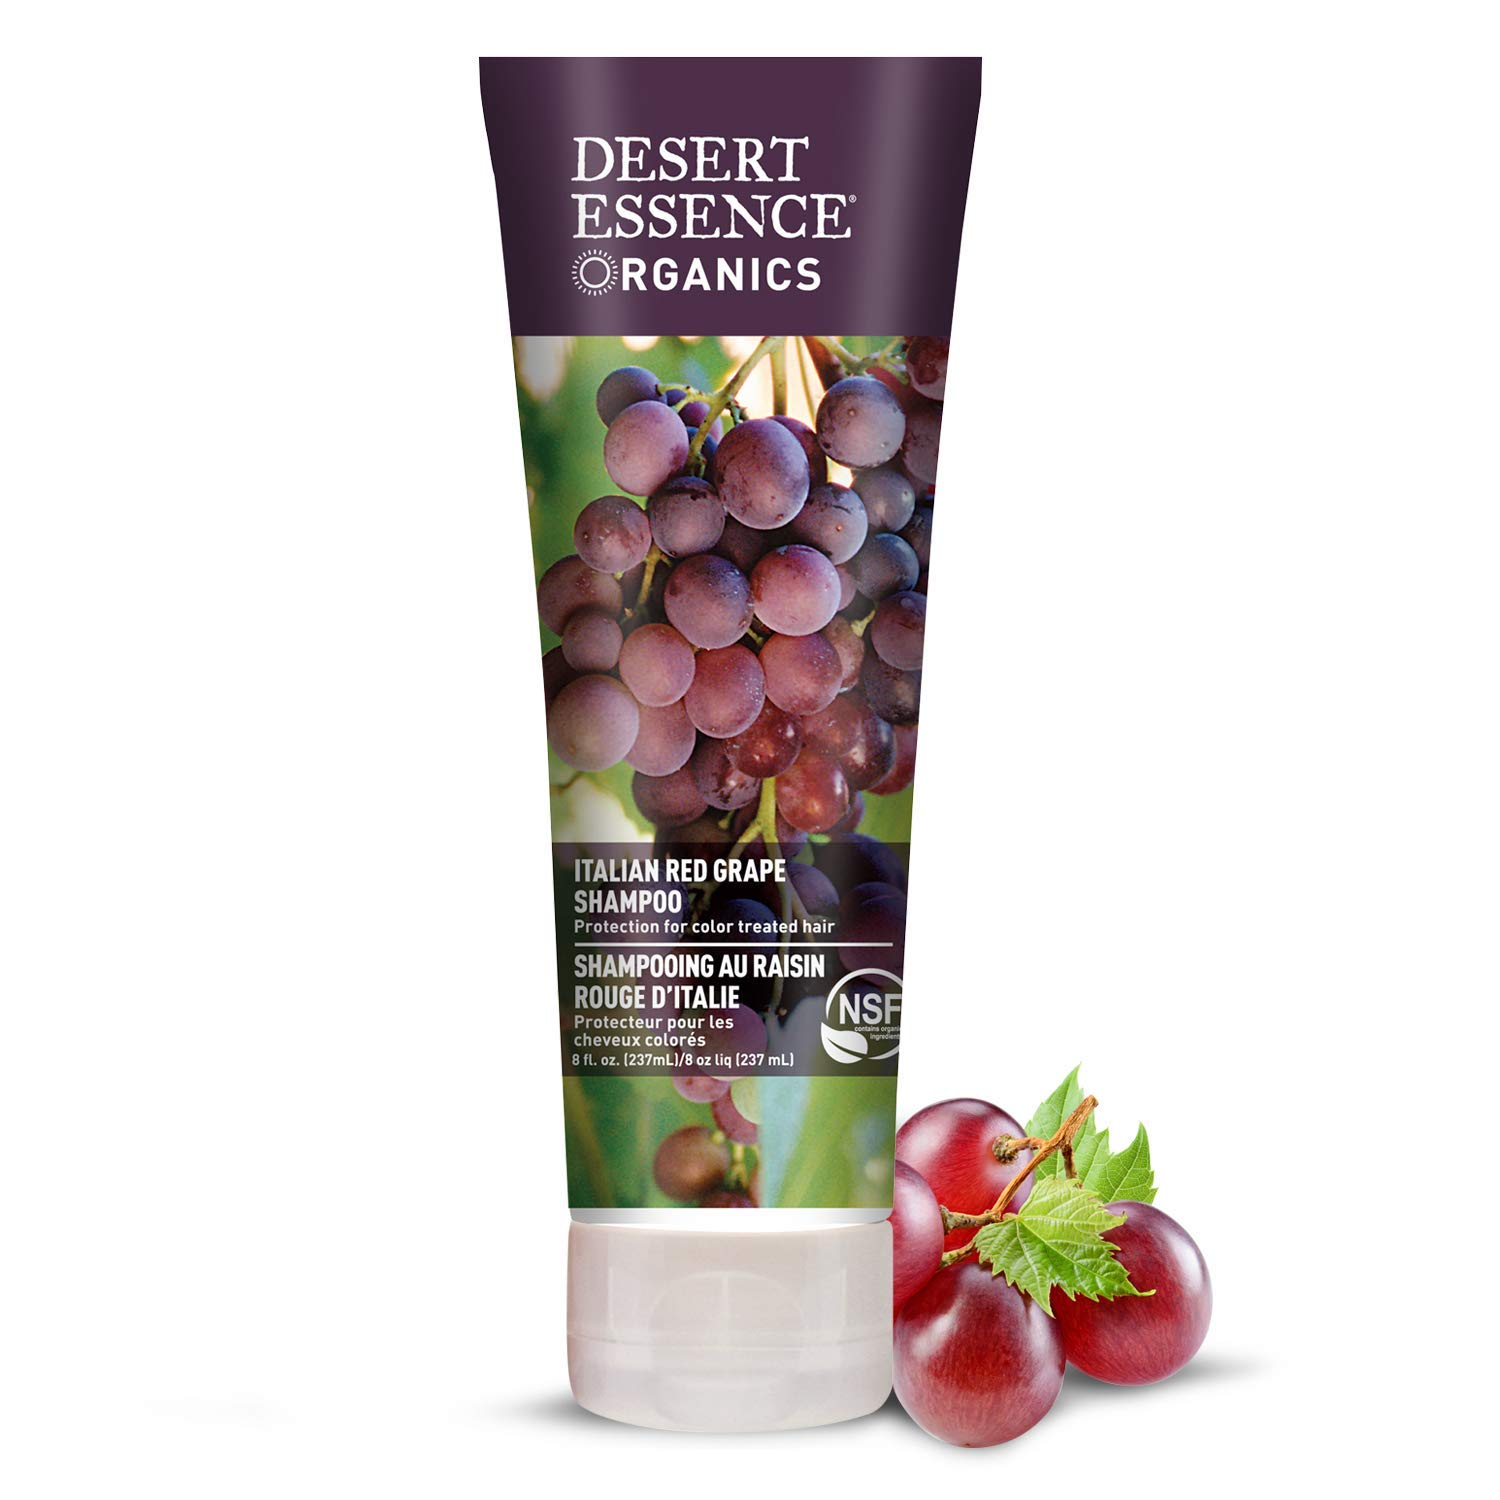 Desert Essence Organics Italian Red Grape Shampoo - 8 Fl Oz - Pack of 2 - Protection For Color Treated Hair - Antioxidants - Healthier & Smoother - Vitamin B5 - Sugar & Coconut Oil Cleansers